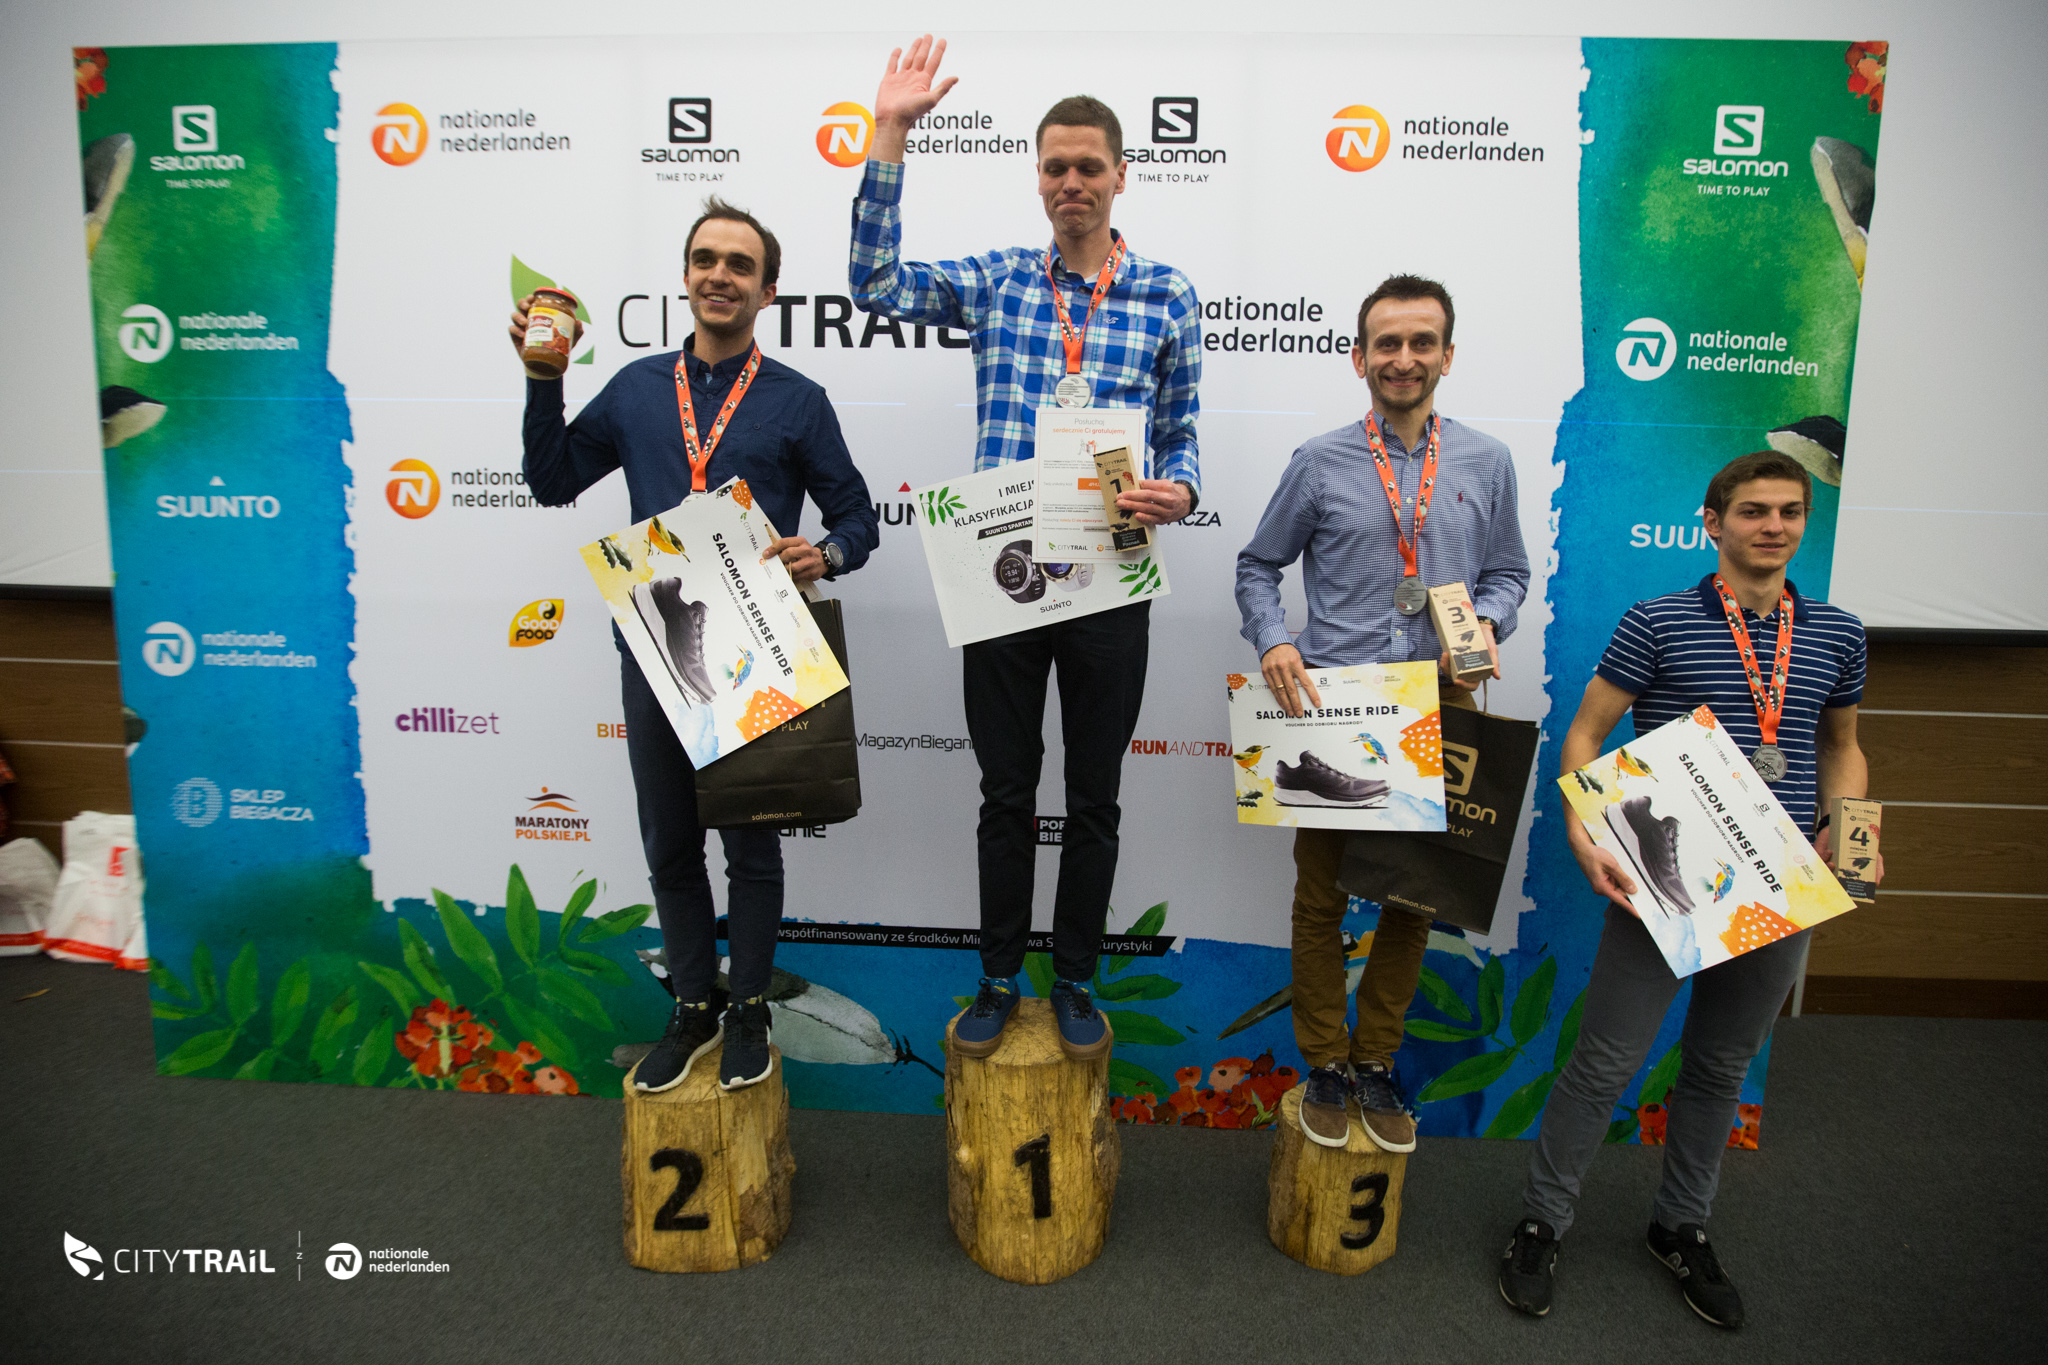 city_trail_poznan_gala_2018_2019-4